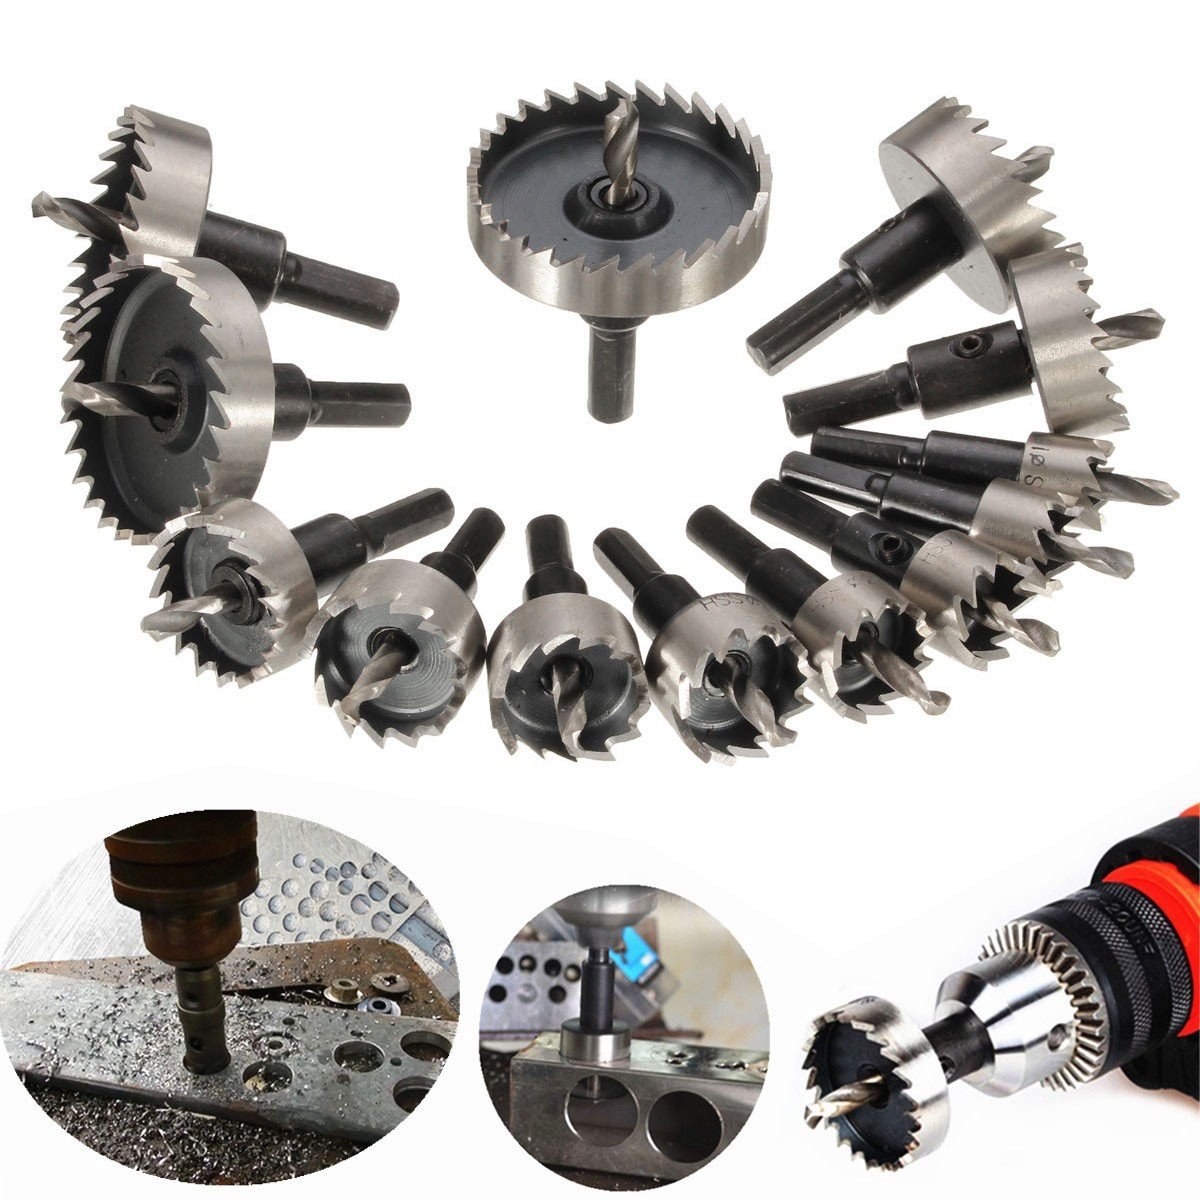 Drillpro Hole Saw Kit HSS Drill Bit Hole Saw Set for Stainless, Metal, Wood, Set of 13 Pcs, 5/8''- 2 1/9''